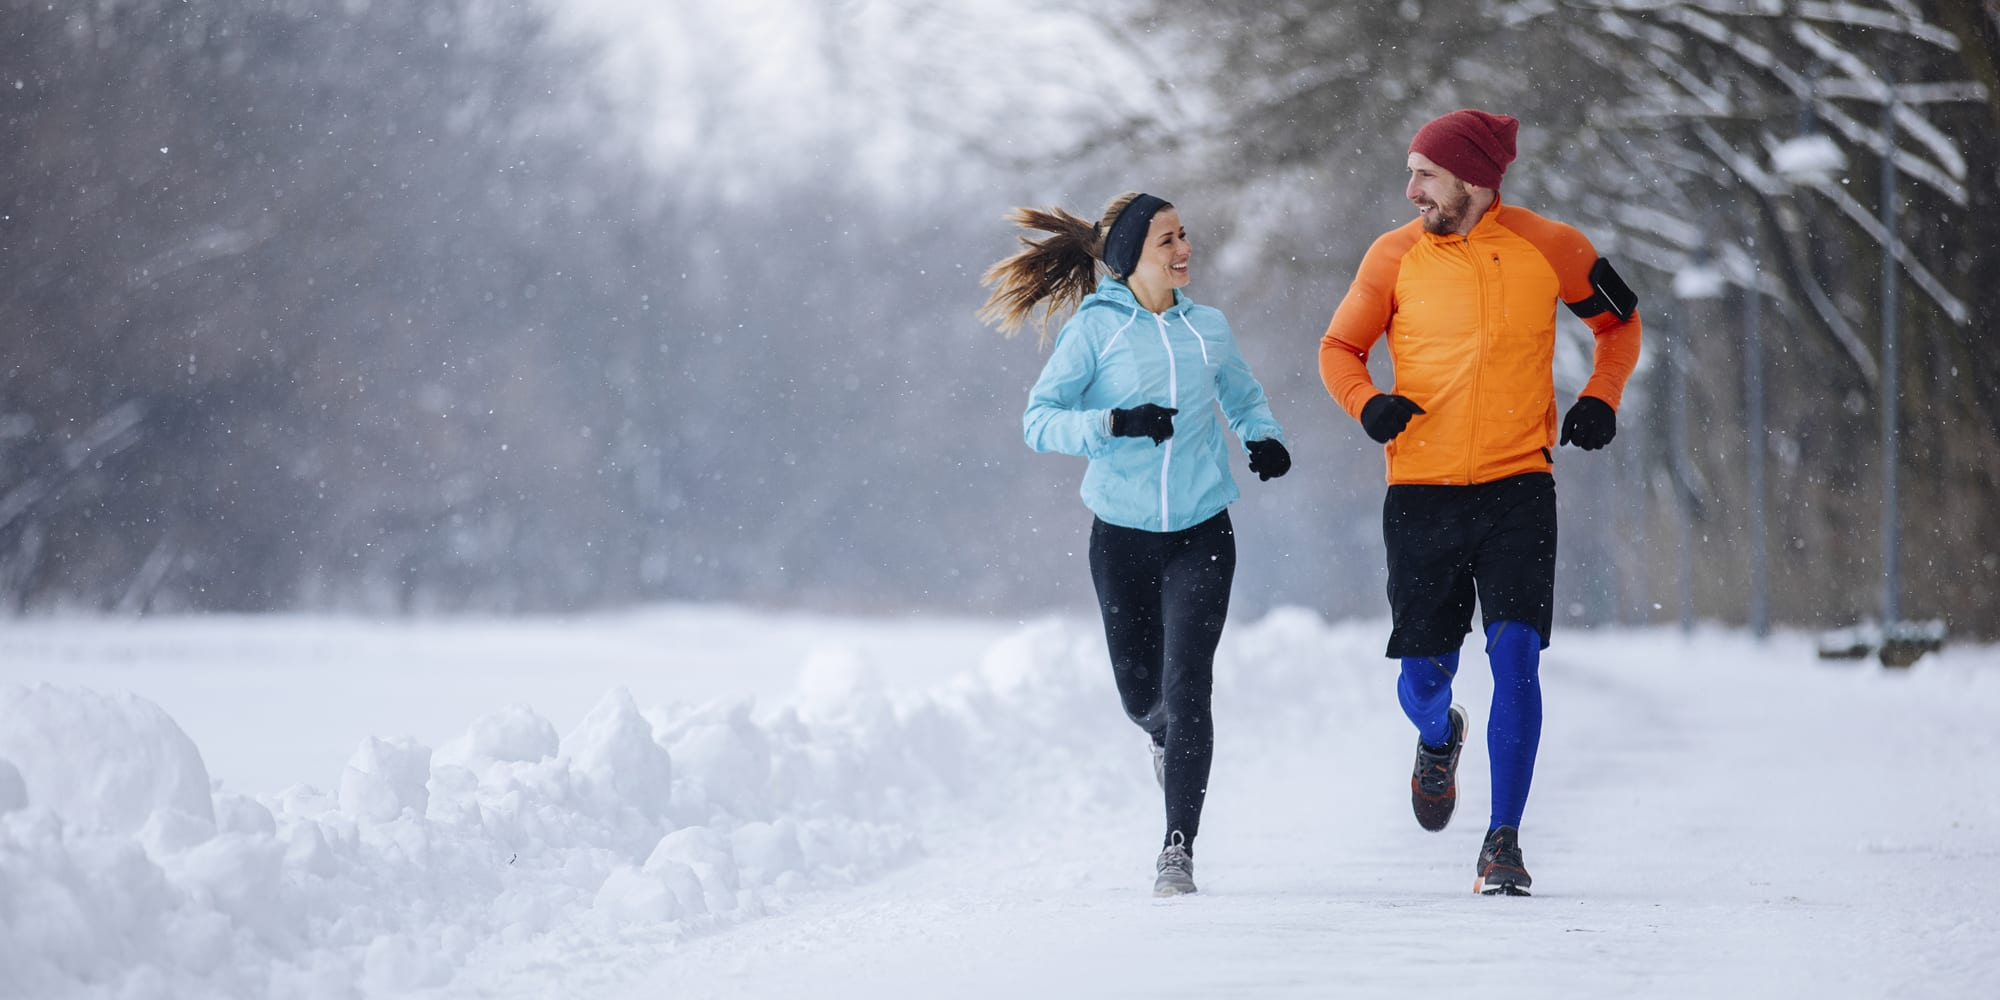 Cold Weather Exercise: 5 Reasons to Work Out in Winter